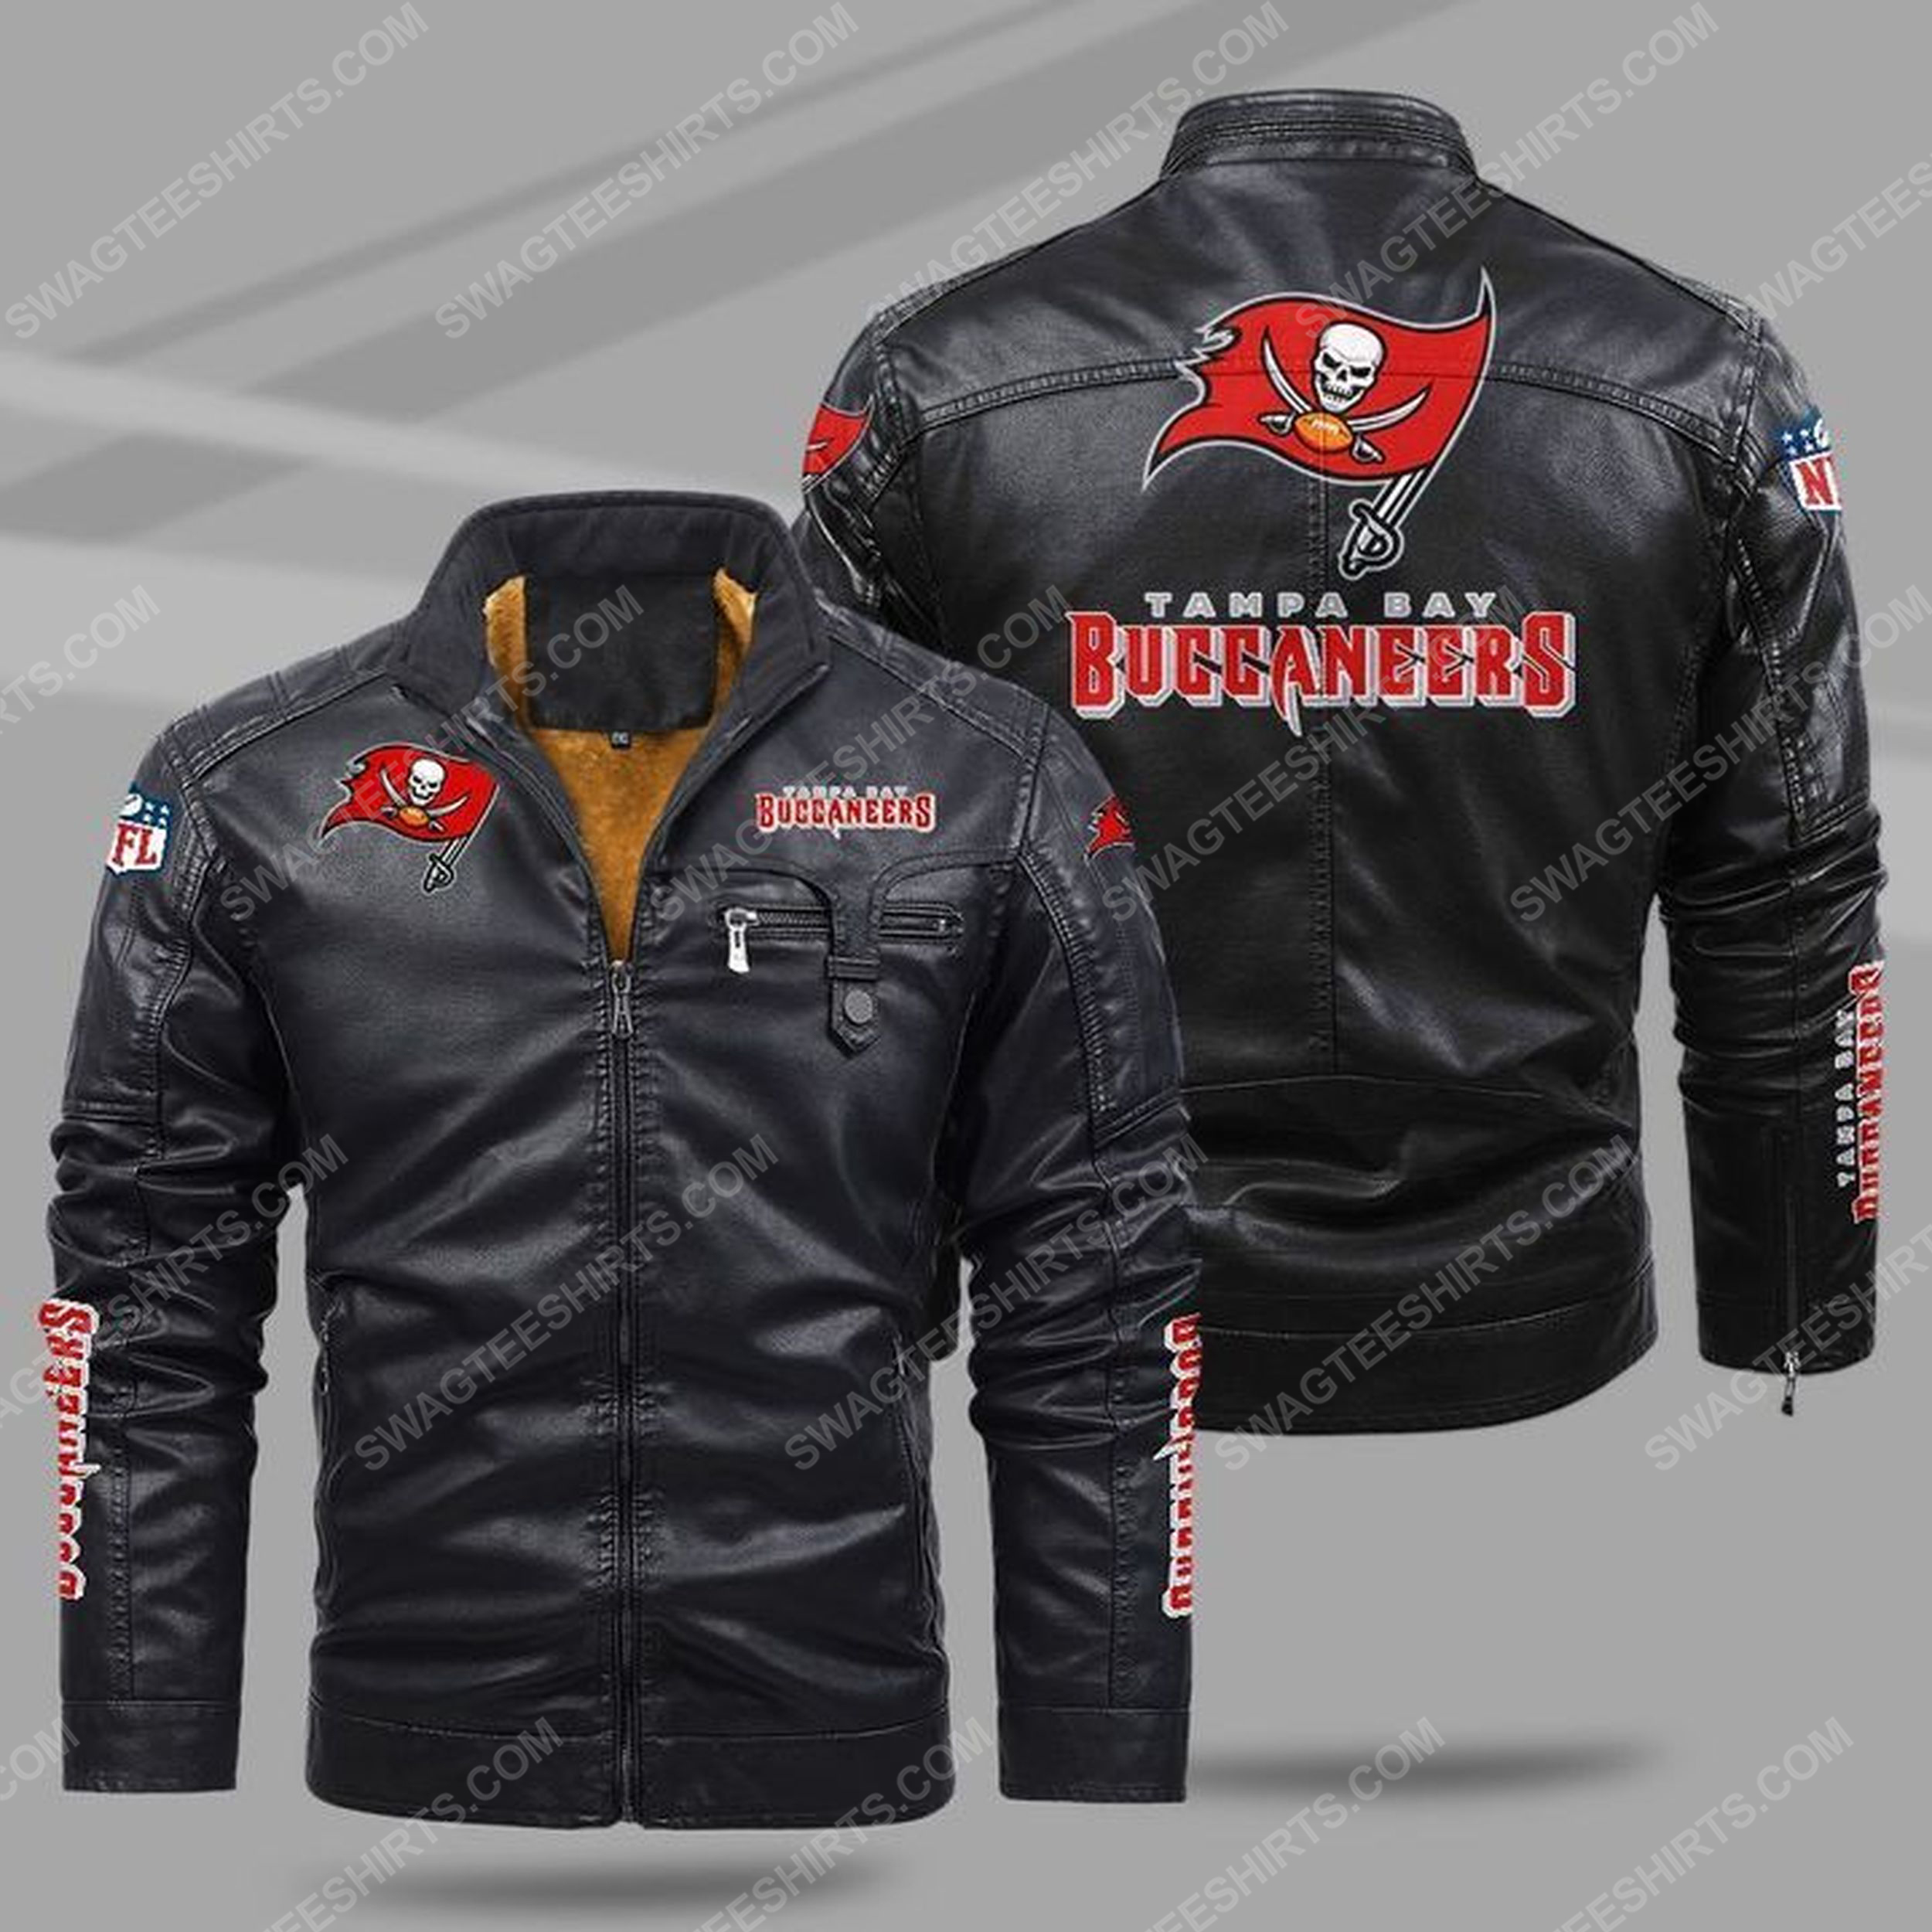 The tampa bay buccaneers nfl all over print fleece leather jacket - black 1 - Copy